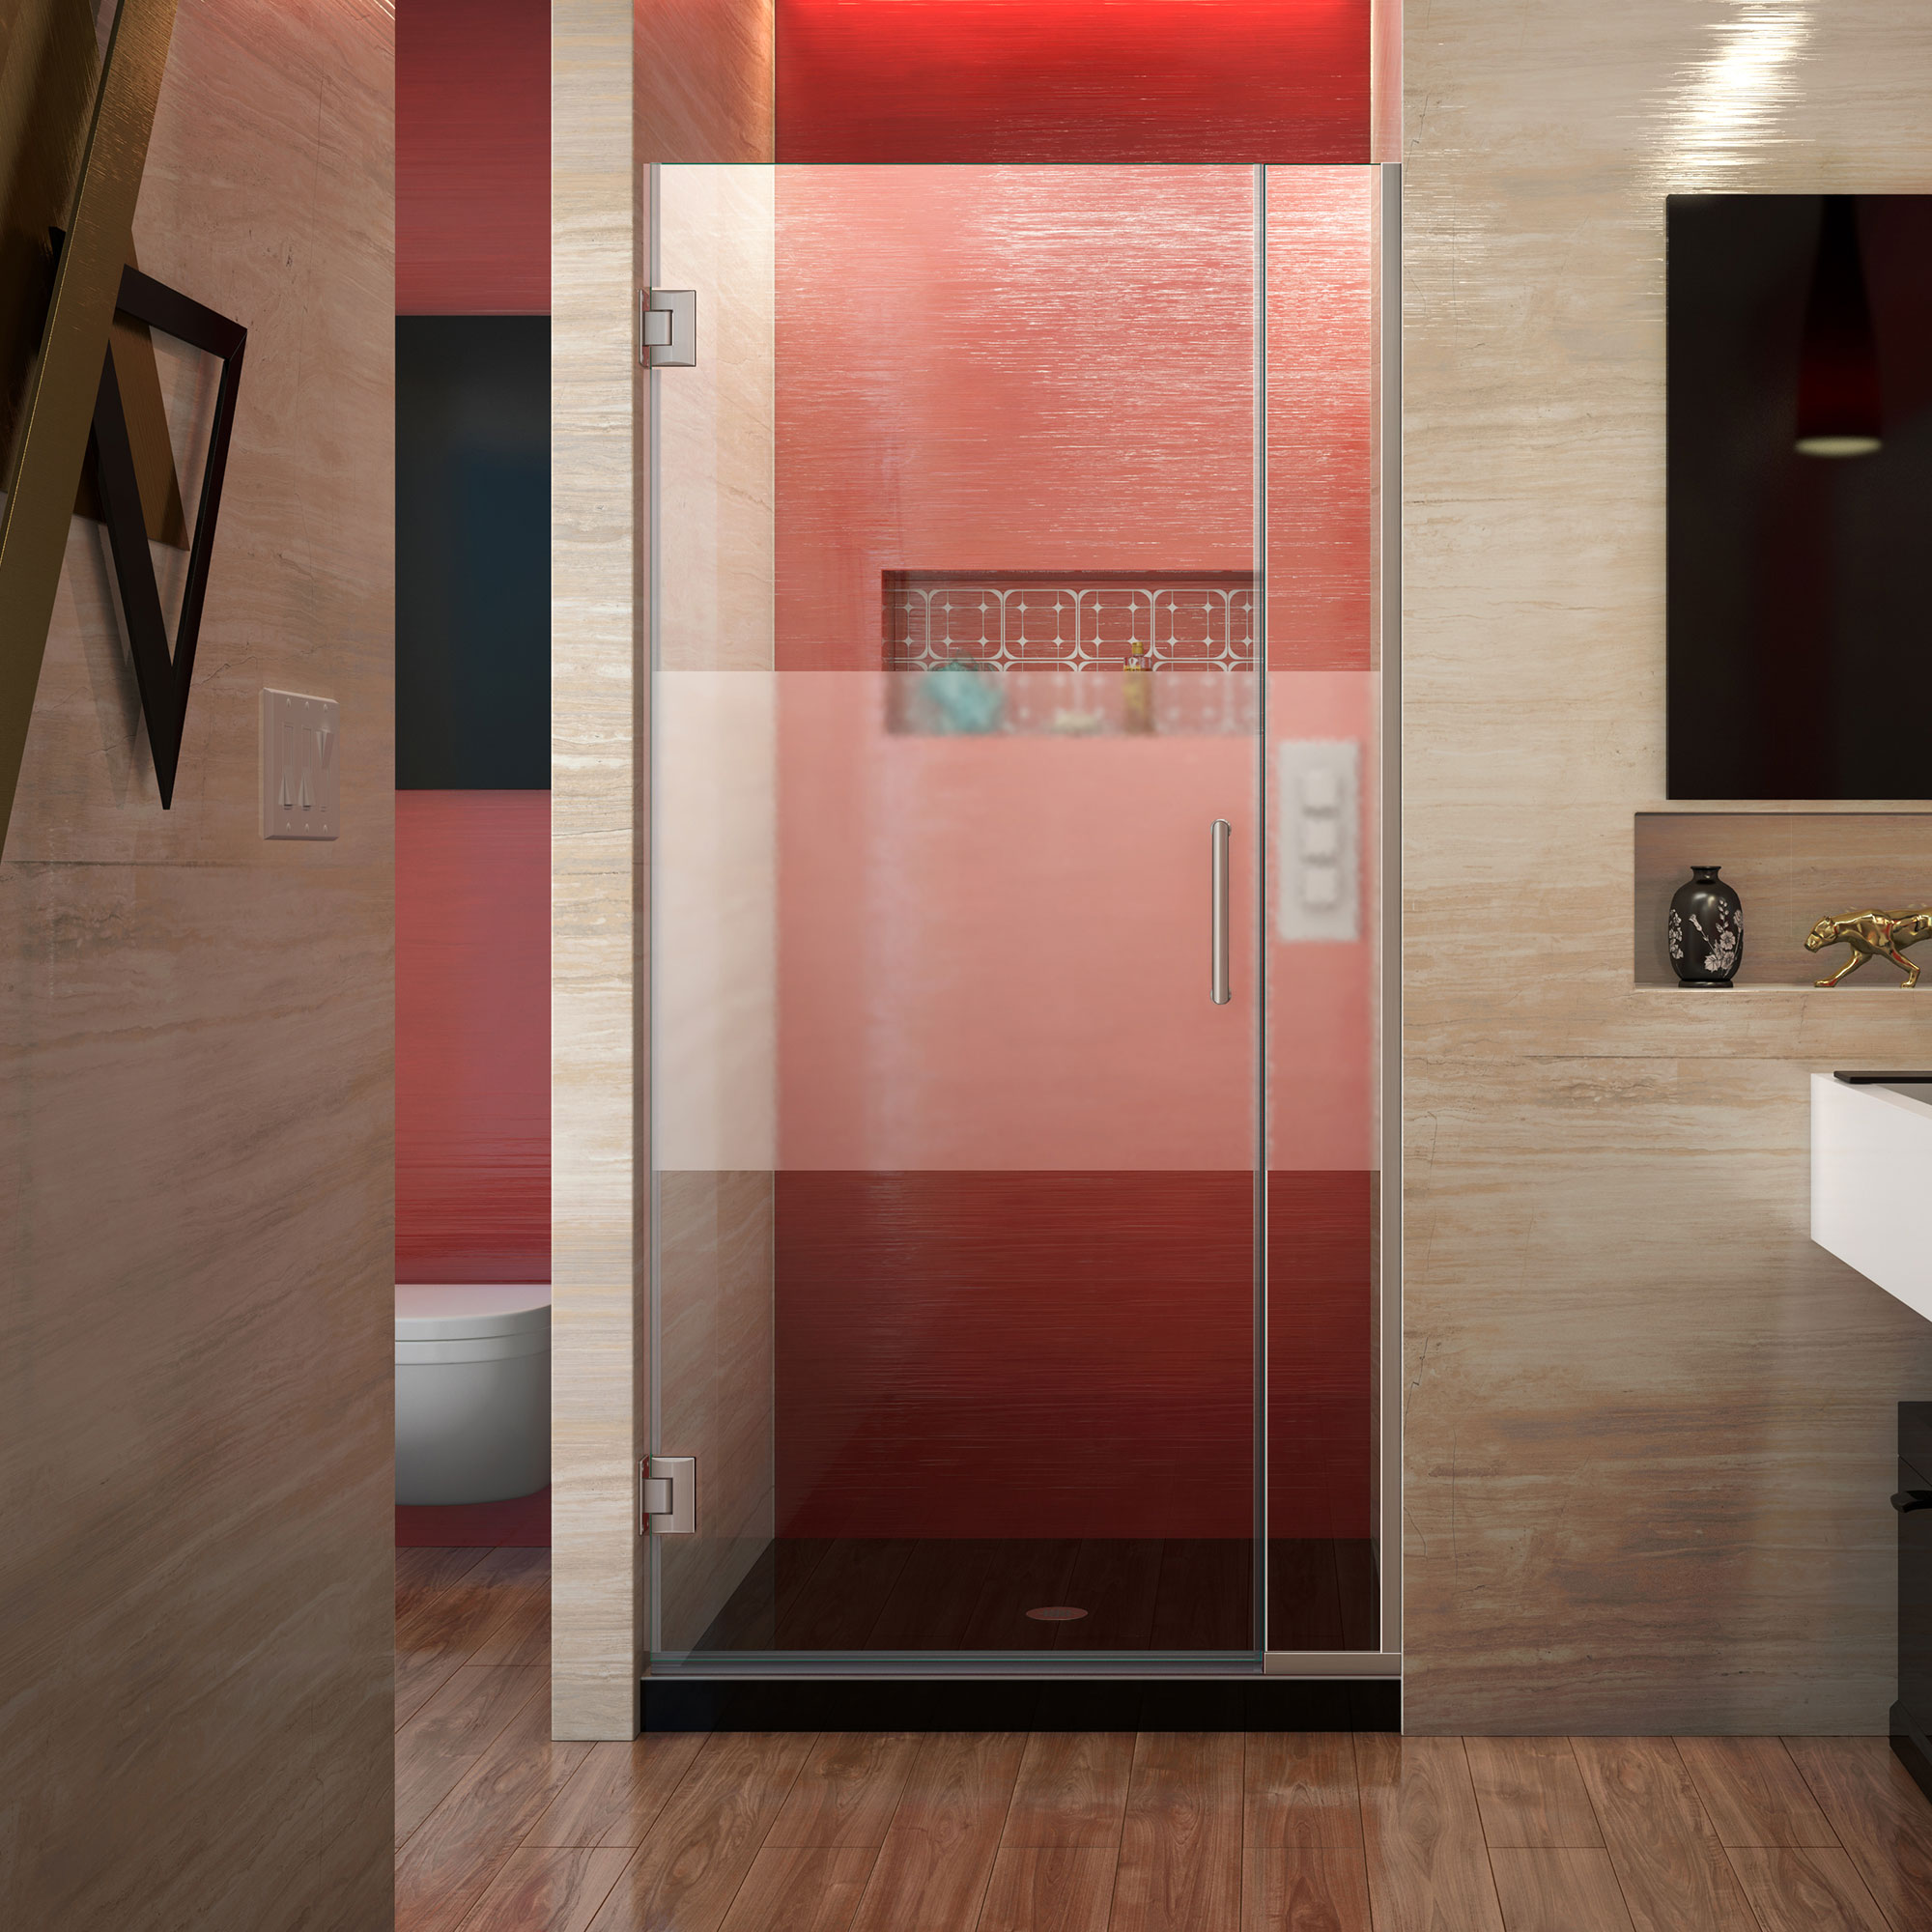 Dreamline Unidoor Plus Shdr 243507210 Hfr 04 Hinged Shower Door With Frosted Band Glass In Brushed Nickel